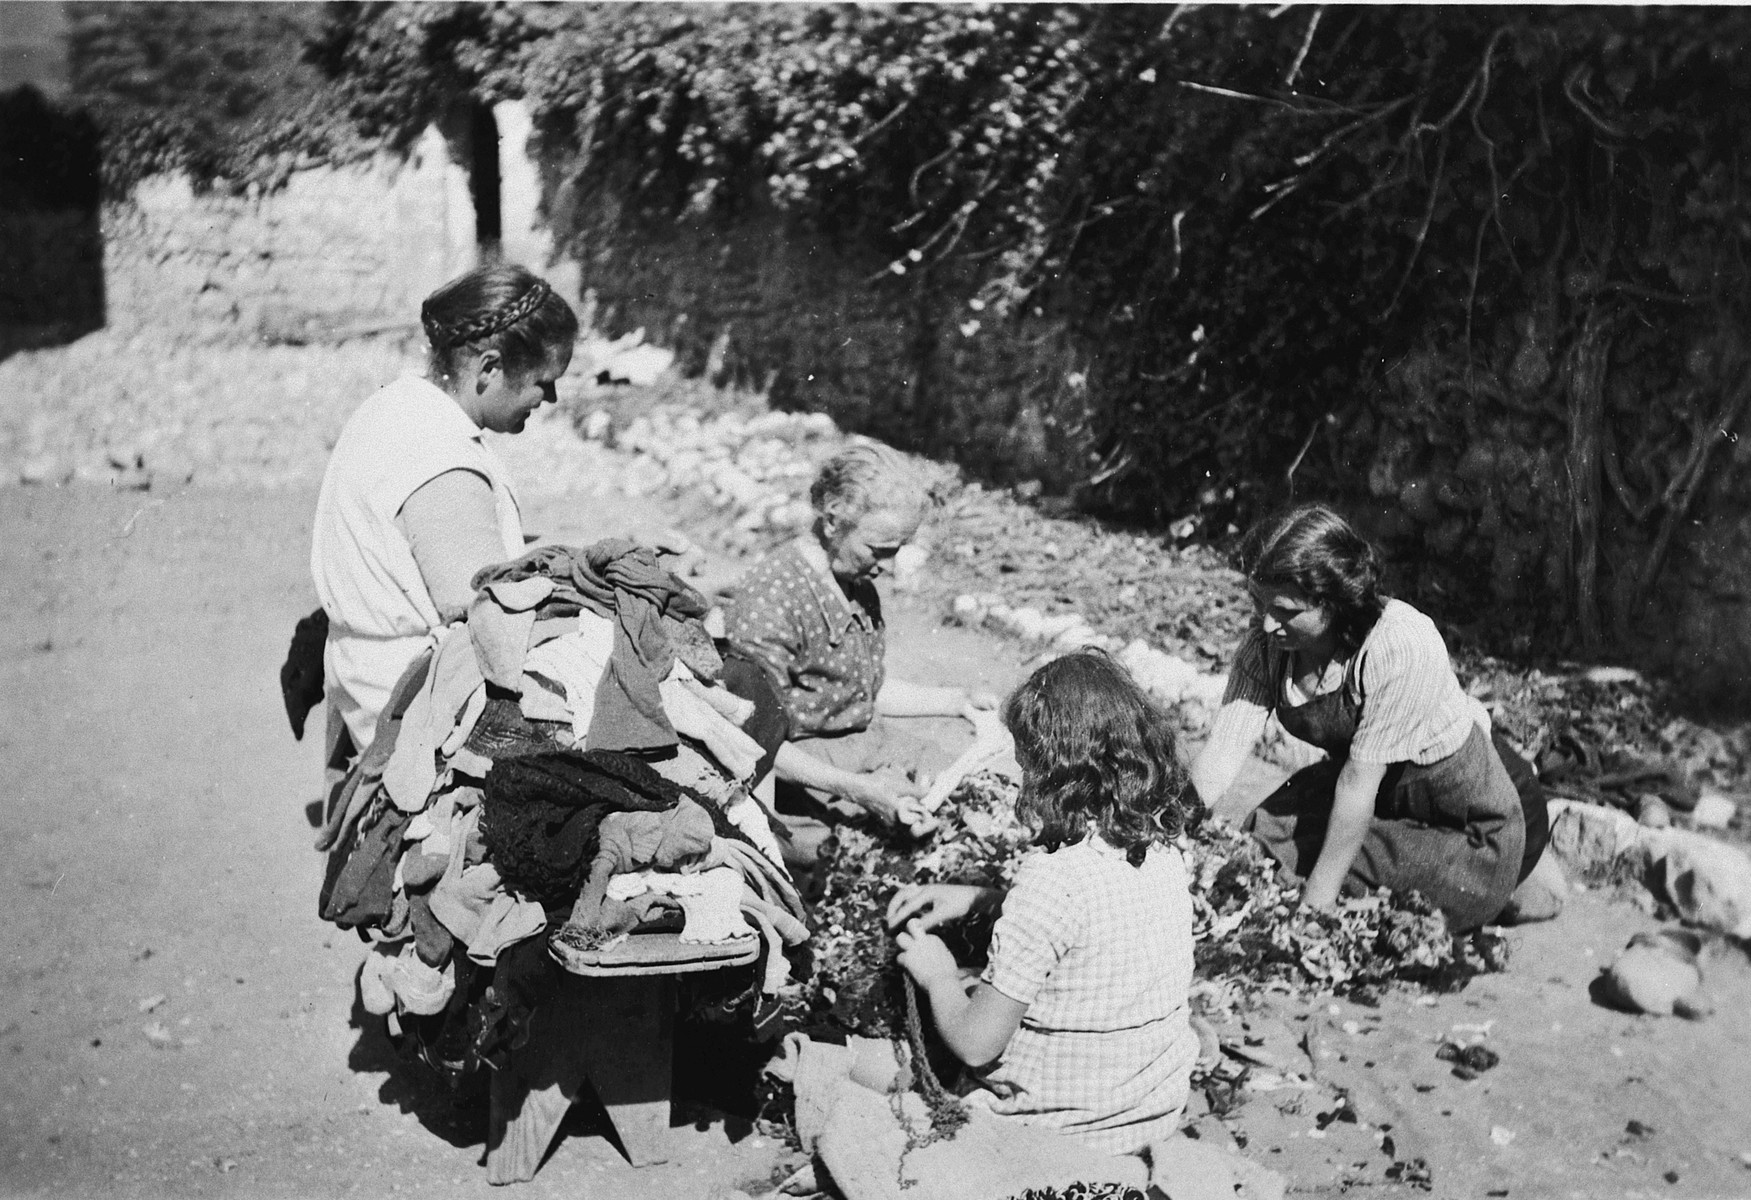 Female staff sort and repair clothing at the Chateau La Hille.  The older woman in the center is Madam Nadal.